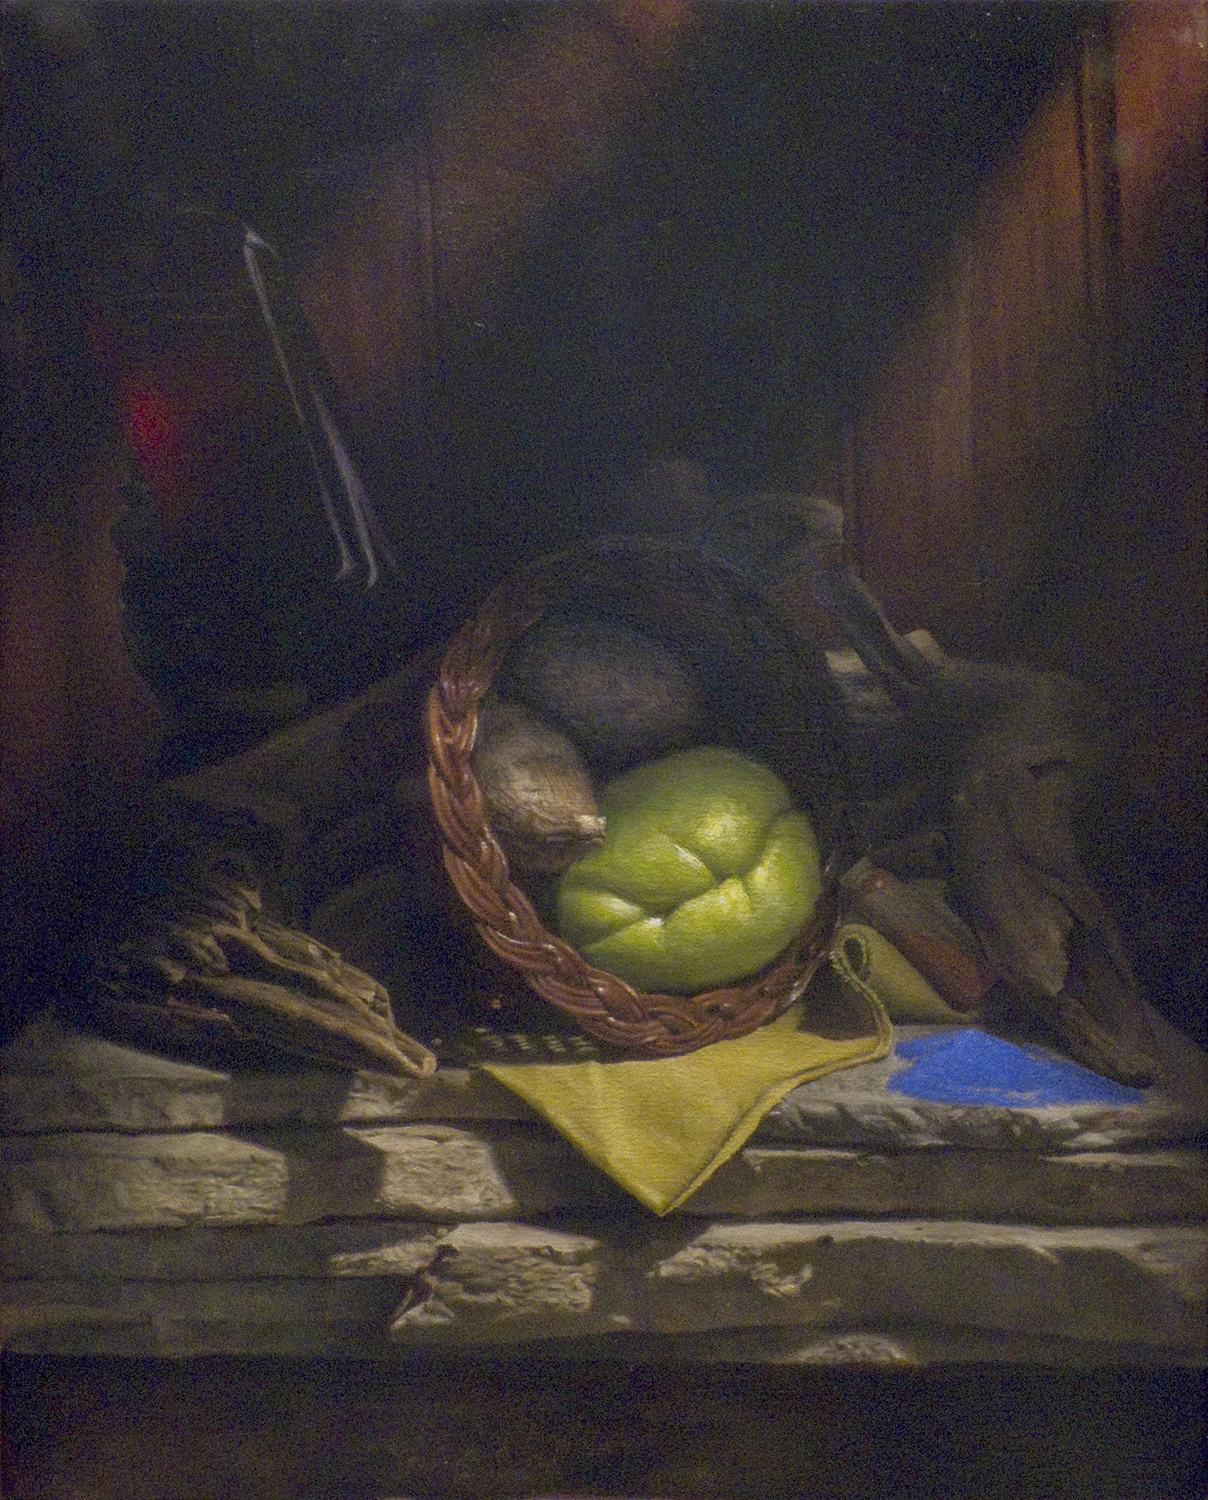 Realist Painting by Toronto Academy of Realist Art Based on 19th Century French Academies